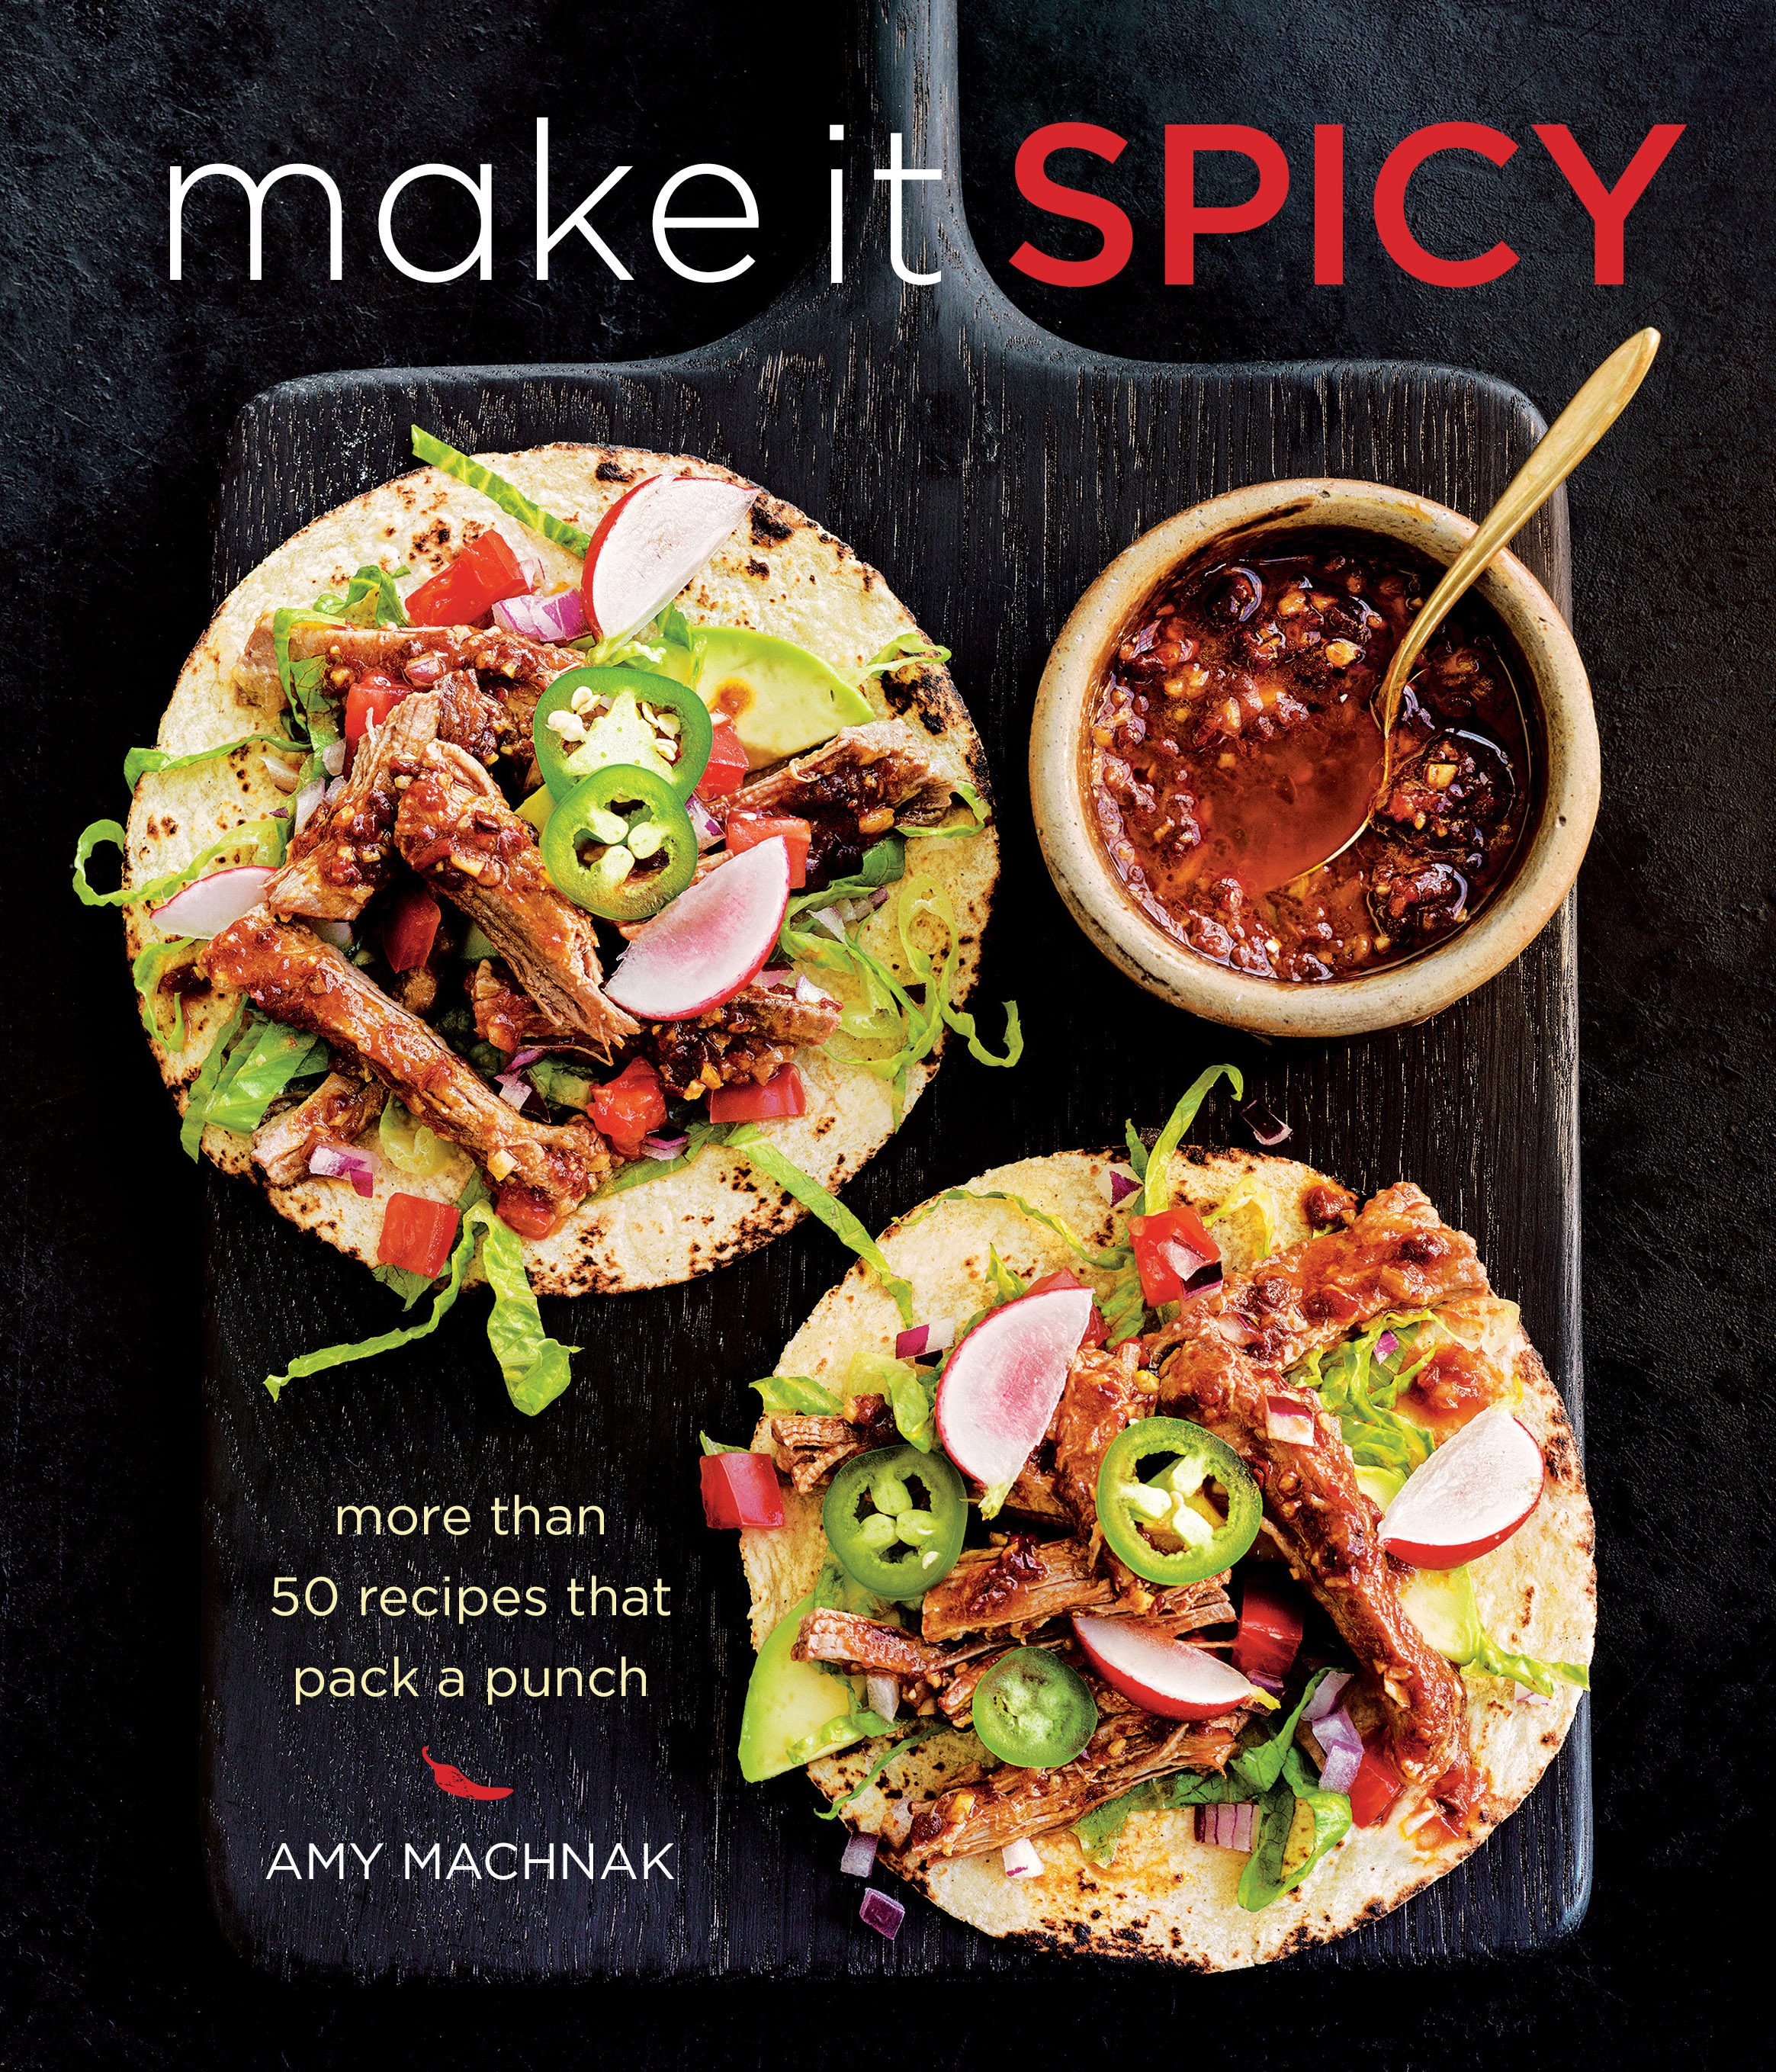 Make it spicy ebook amy machnak descargar libro pdf o epub make it spicy ebook amy machnak 9781681880051 forumfinder